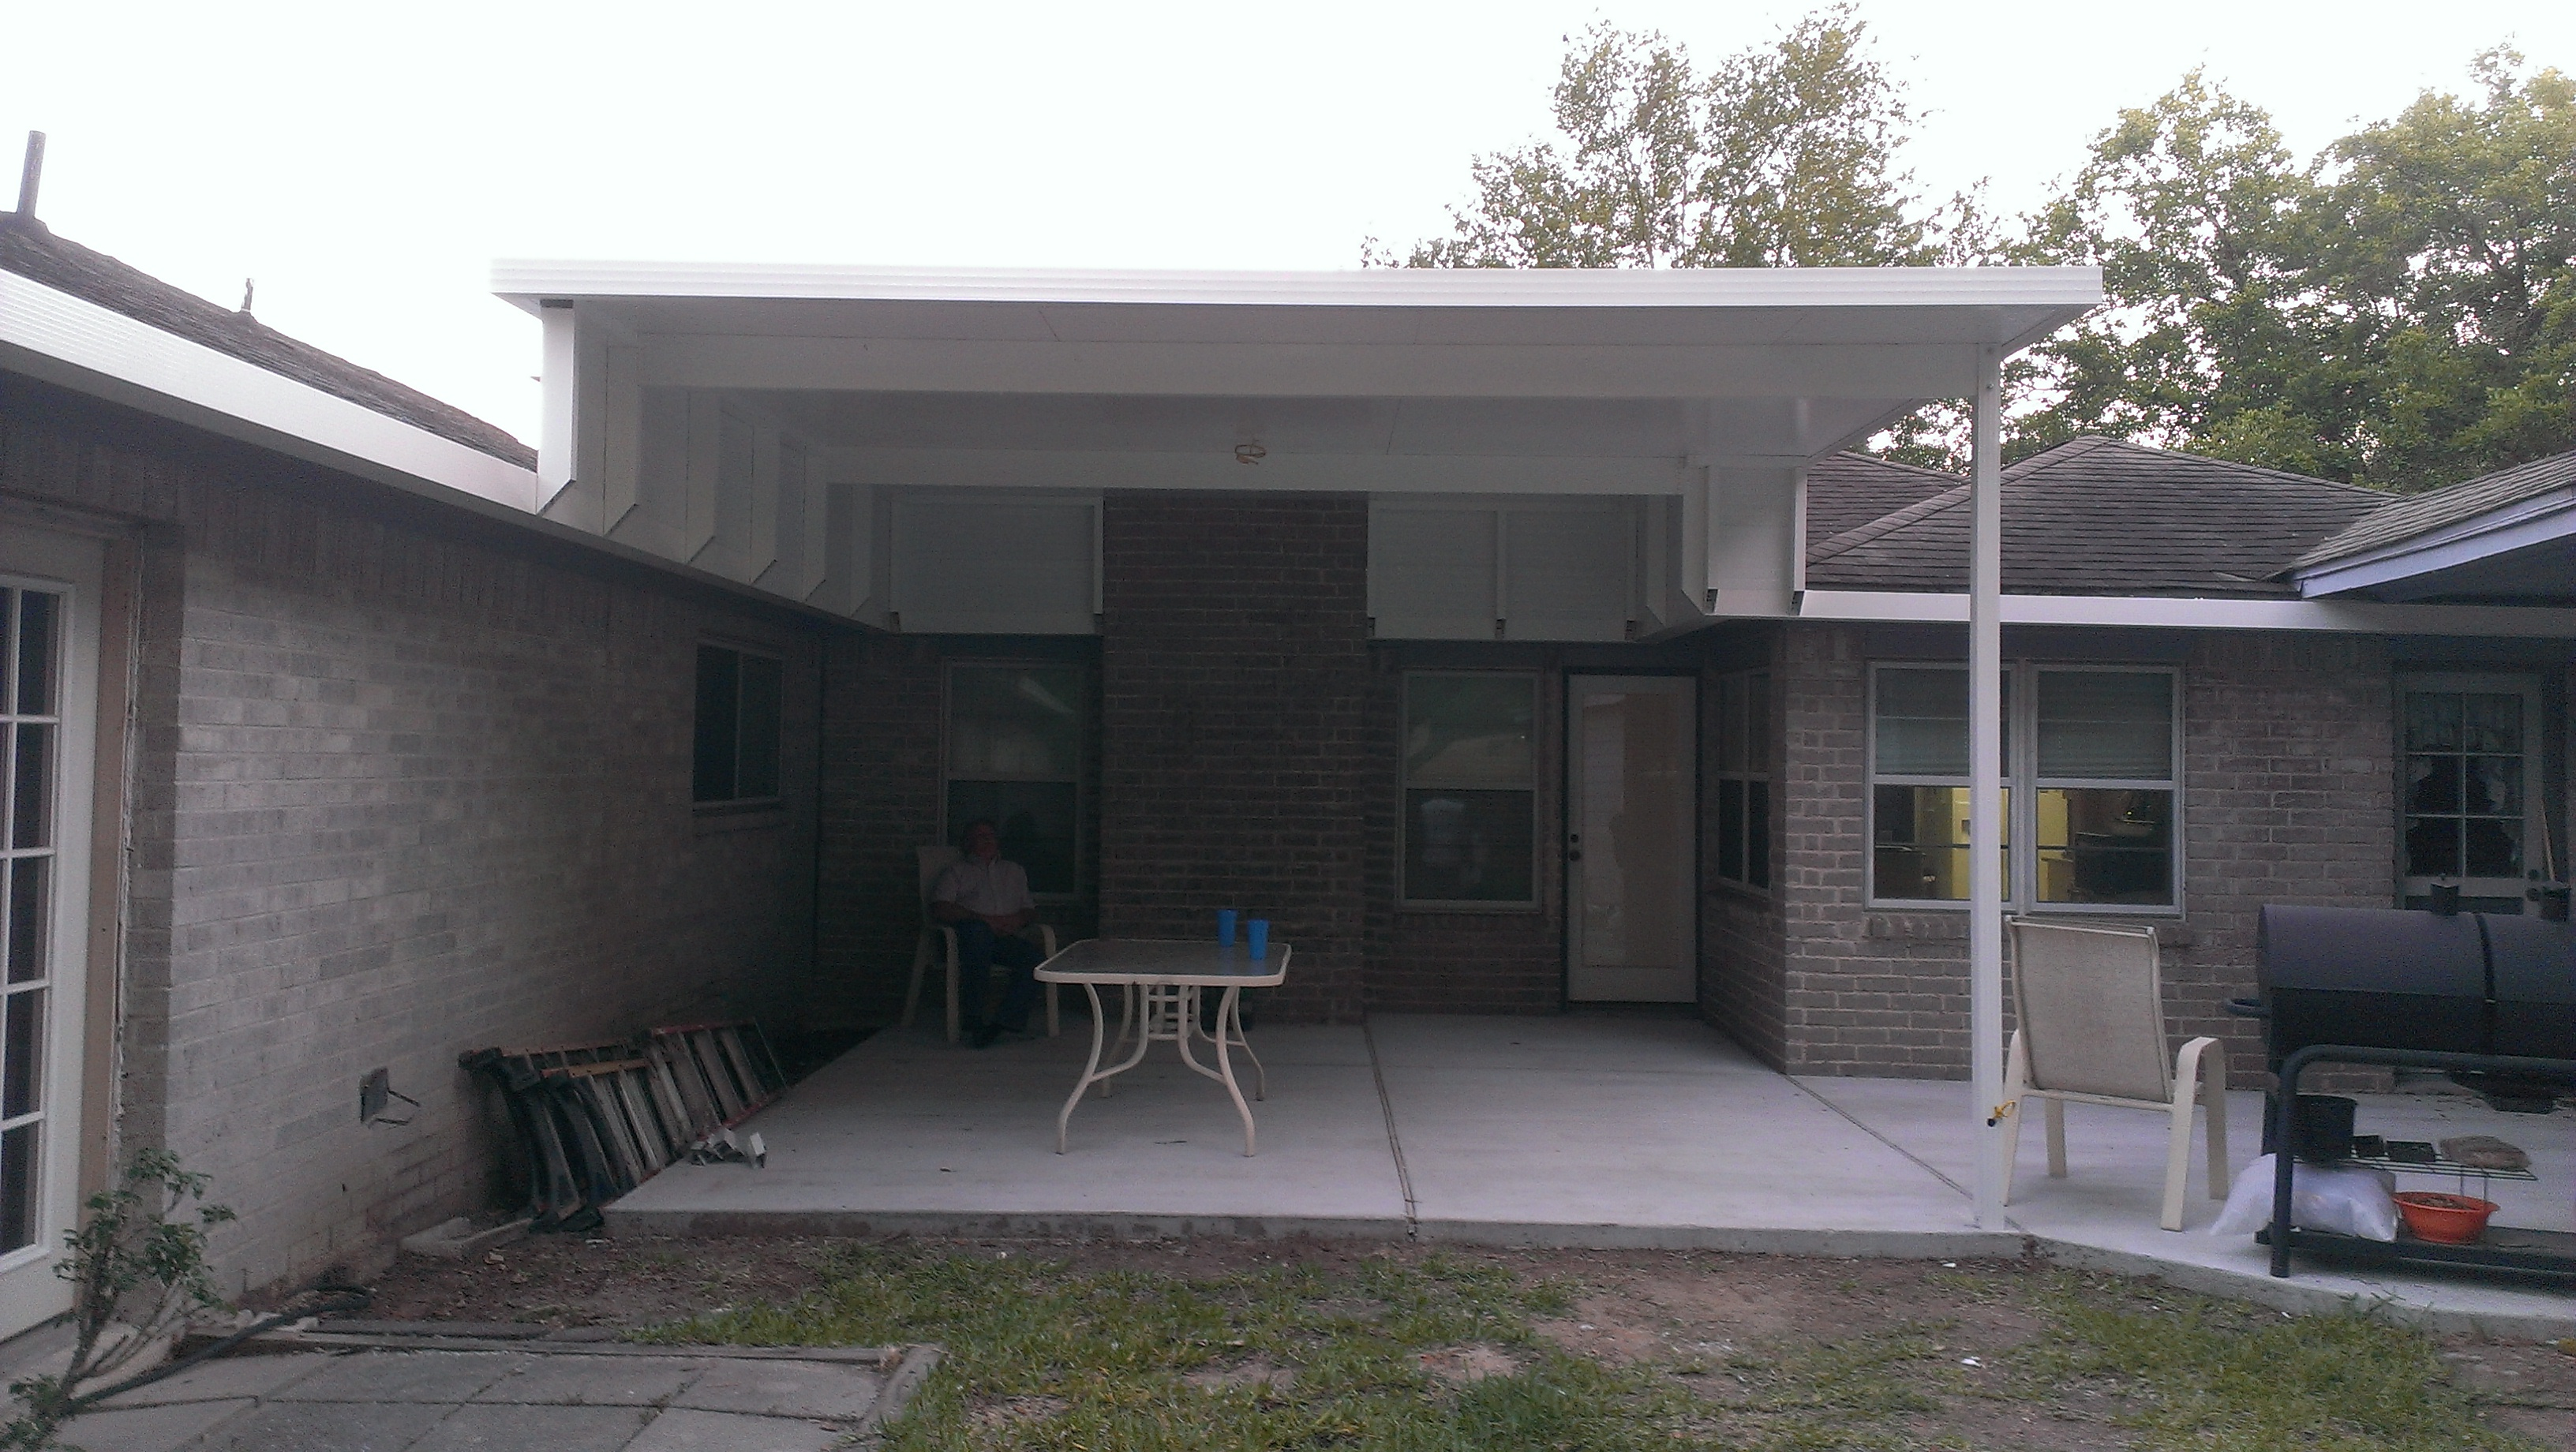 Pensacola Patio Covers 850 206 9952 Call Or Text For A